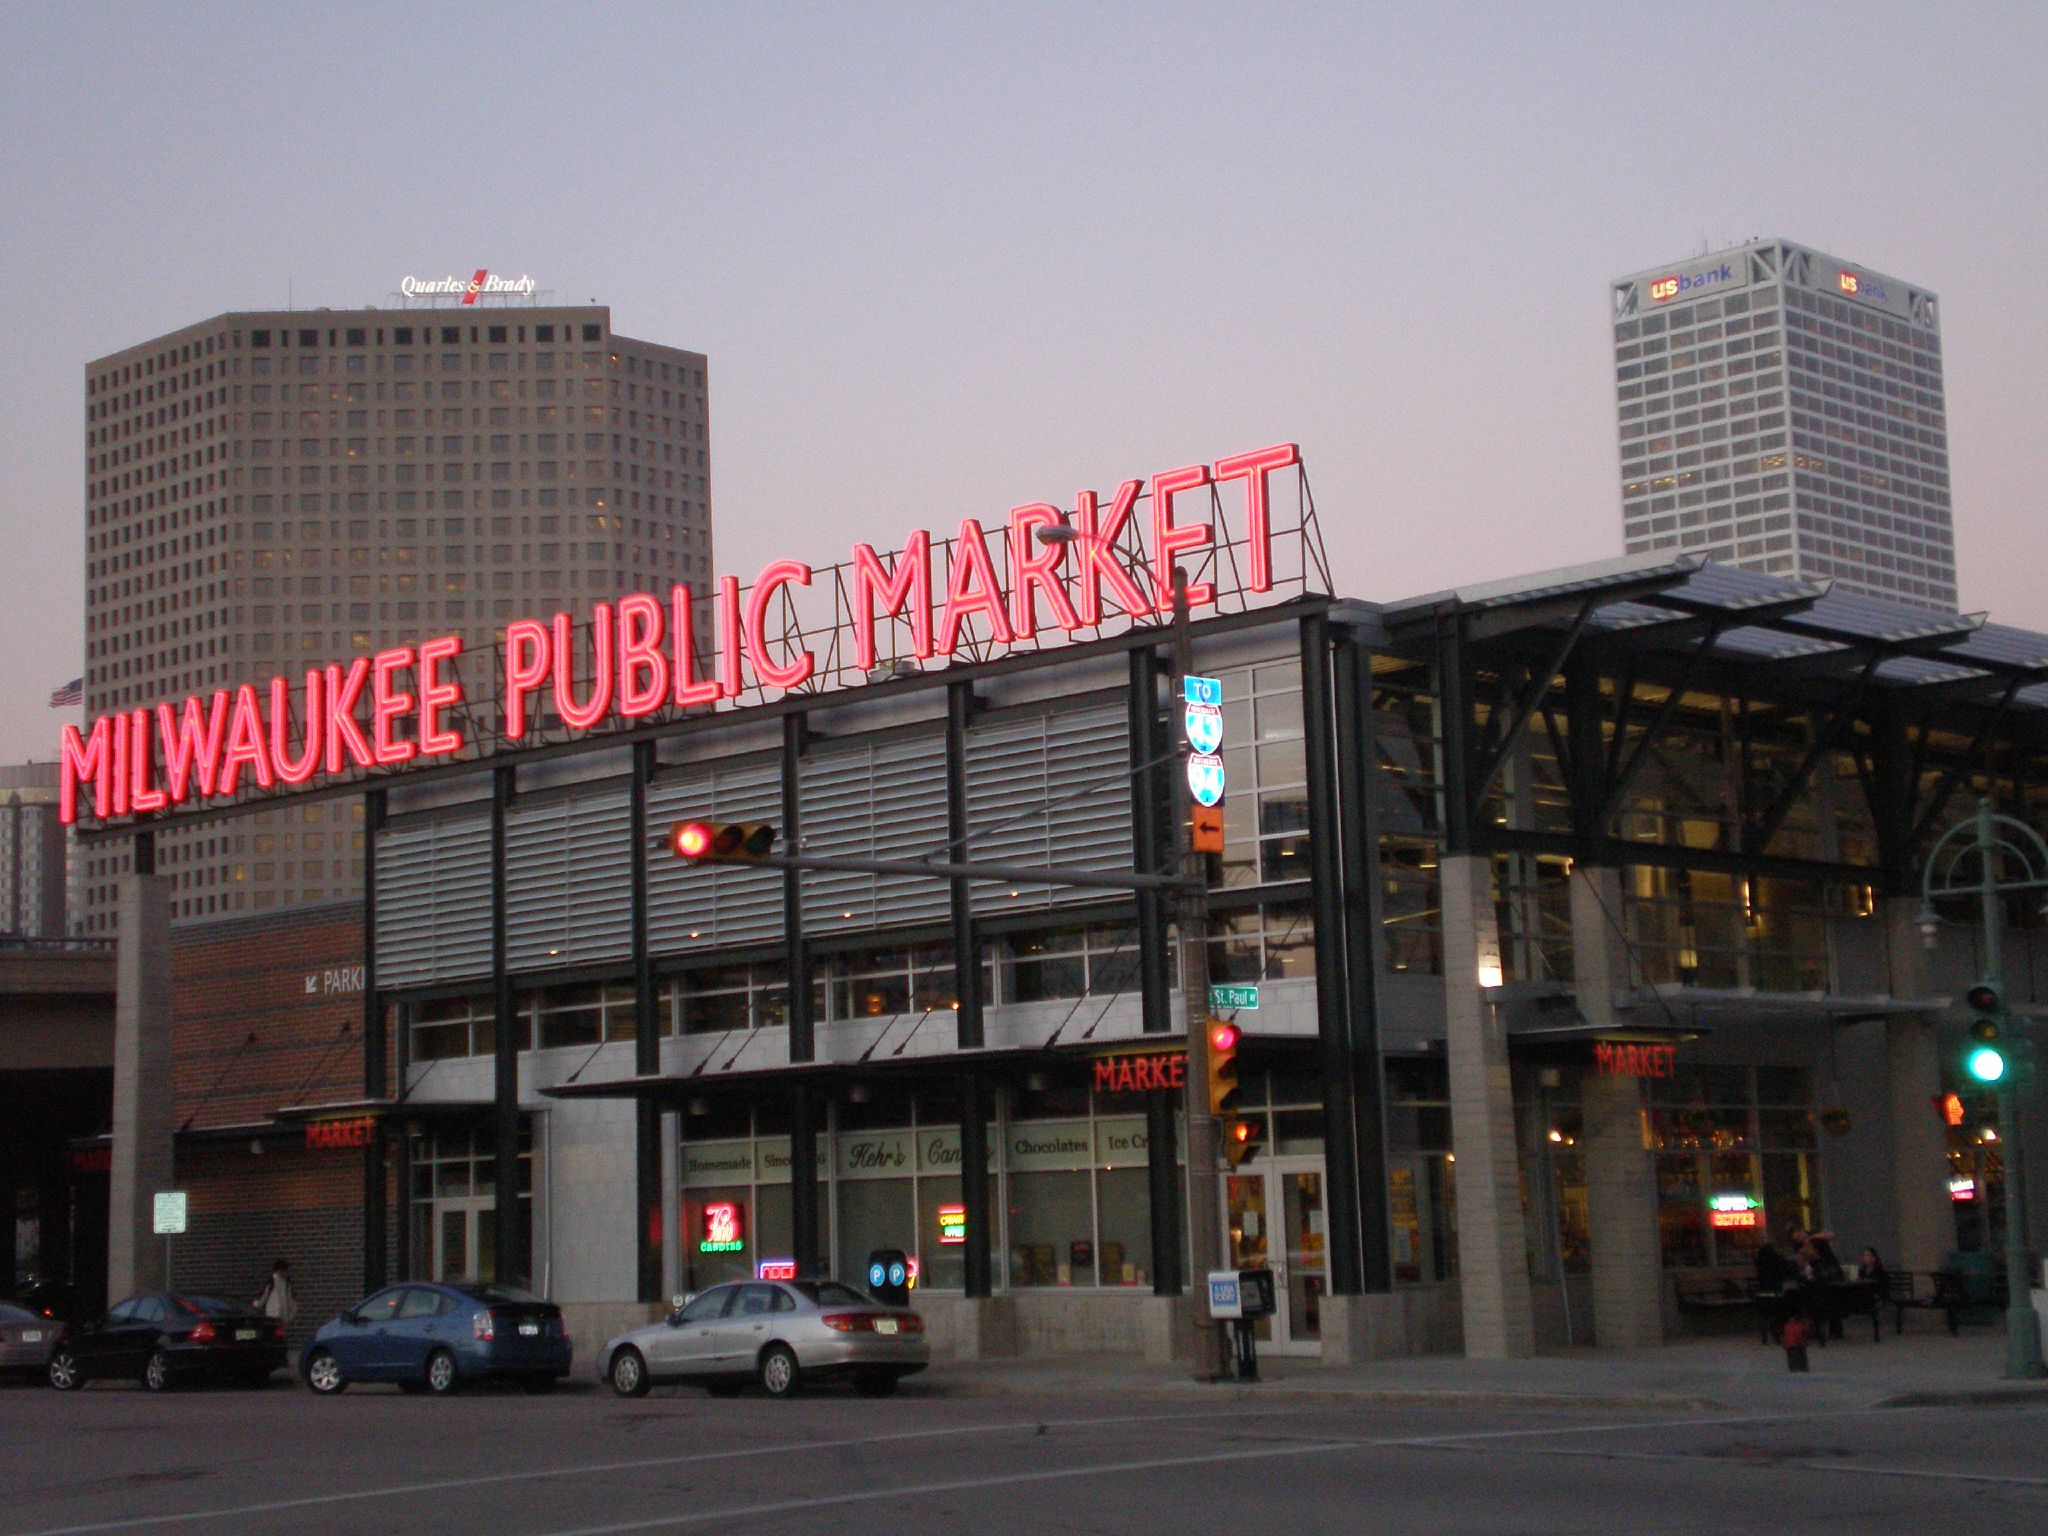 Milwaukee Public Market. Photo by Dave Reid.